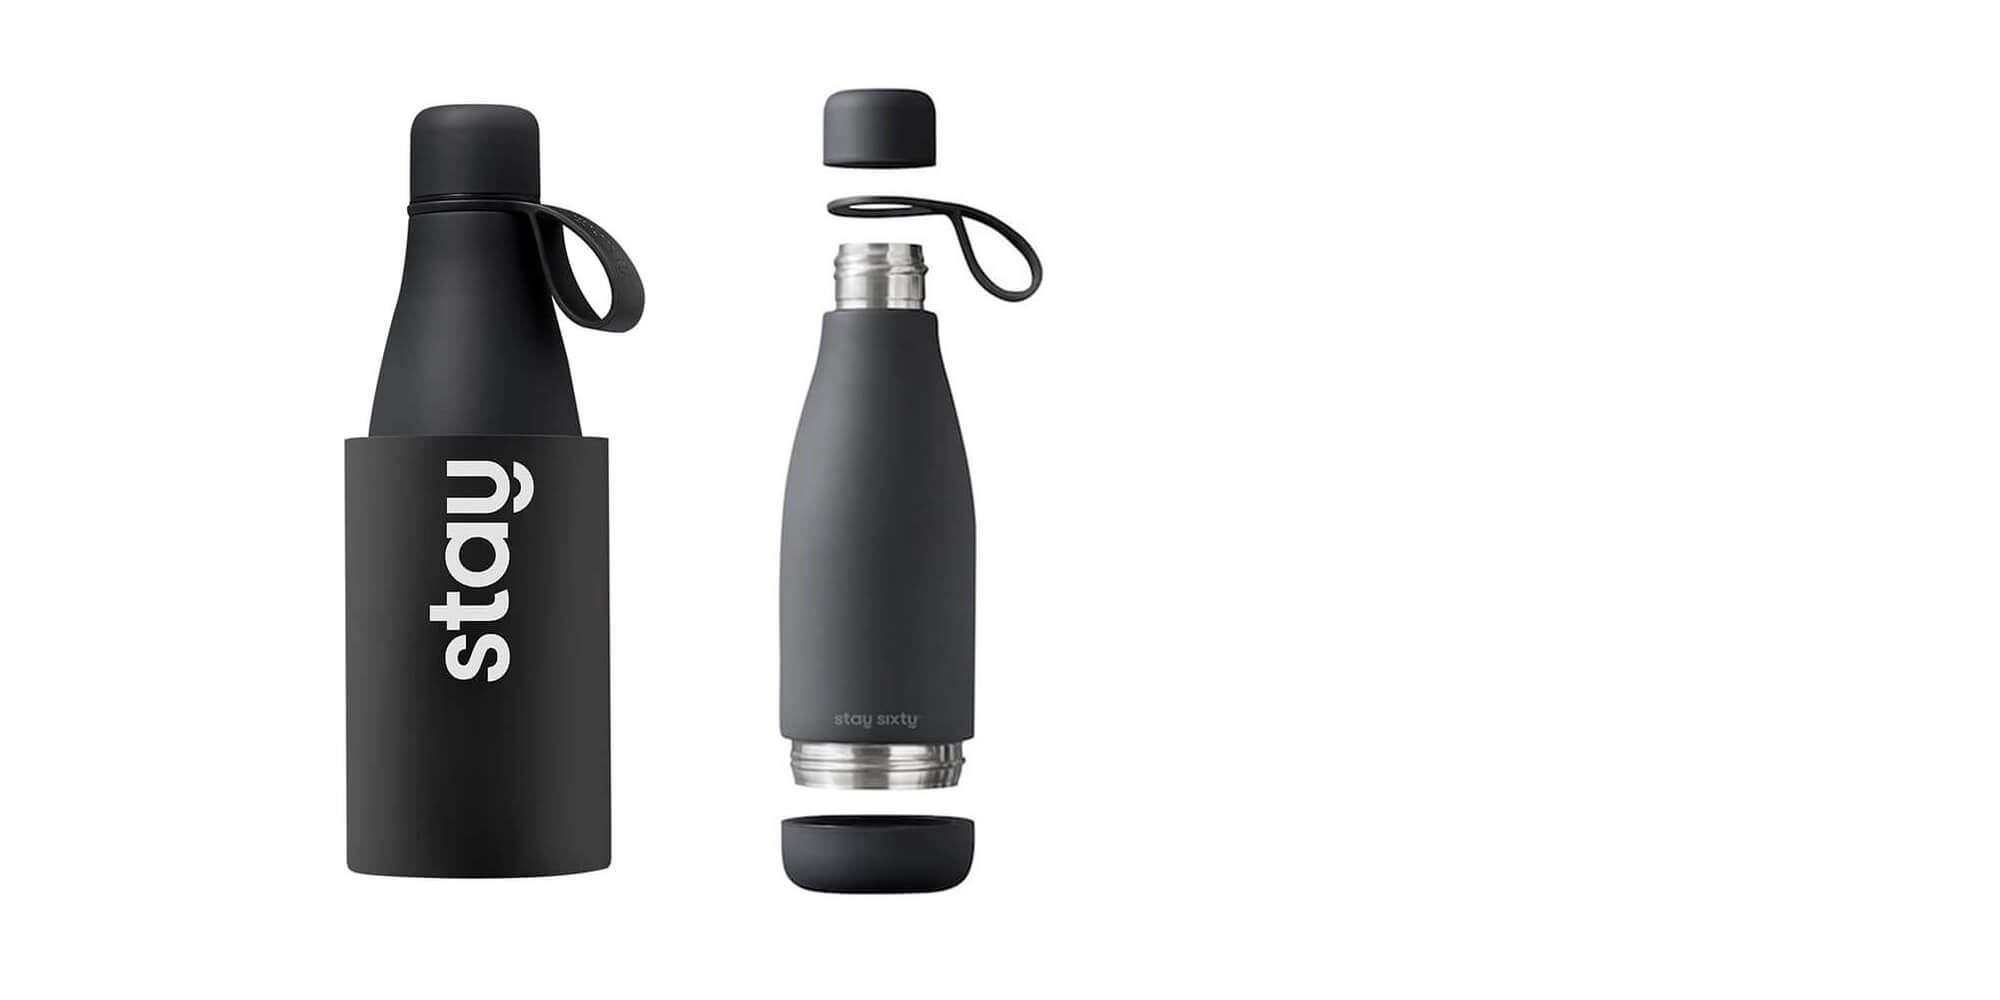 BPA-free & Easy to Clean Reusable Bottle by Stay Sixty